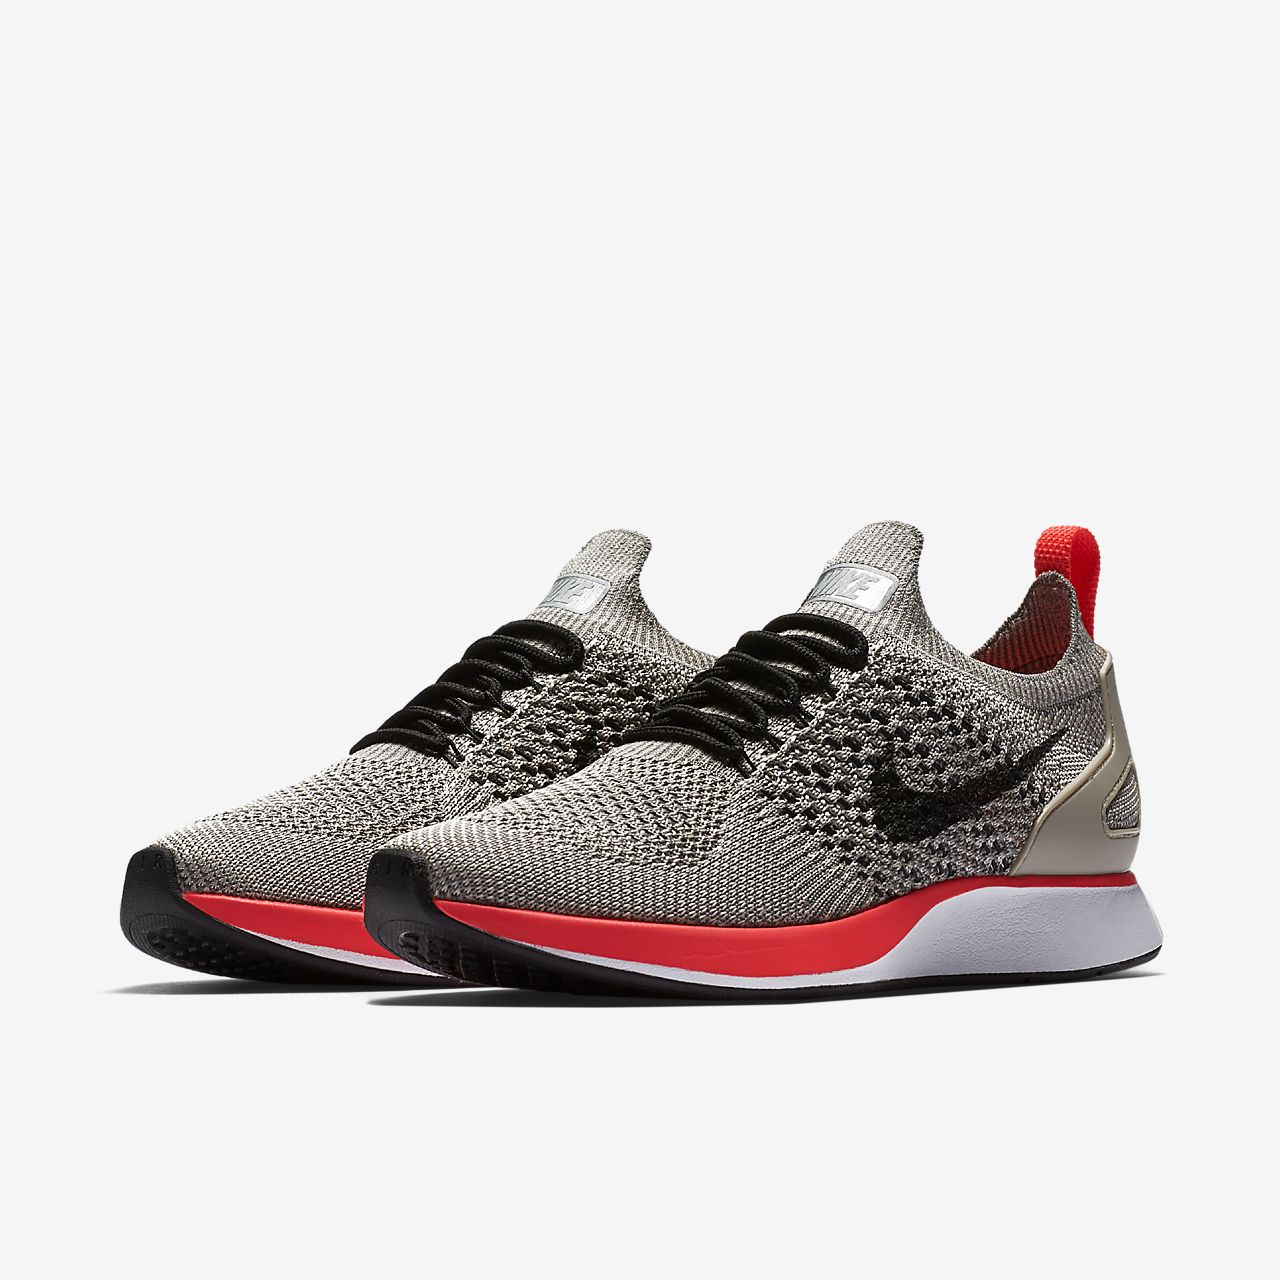 Nike Air Fly Knit Myra Professional Standards Councils